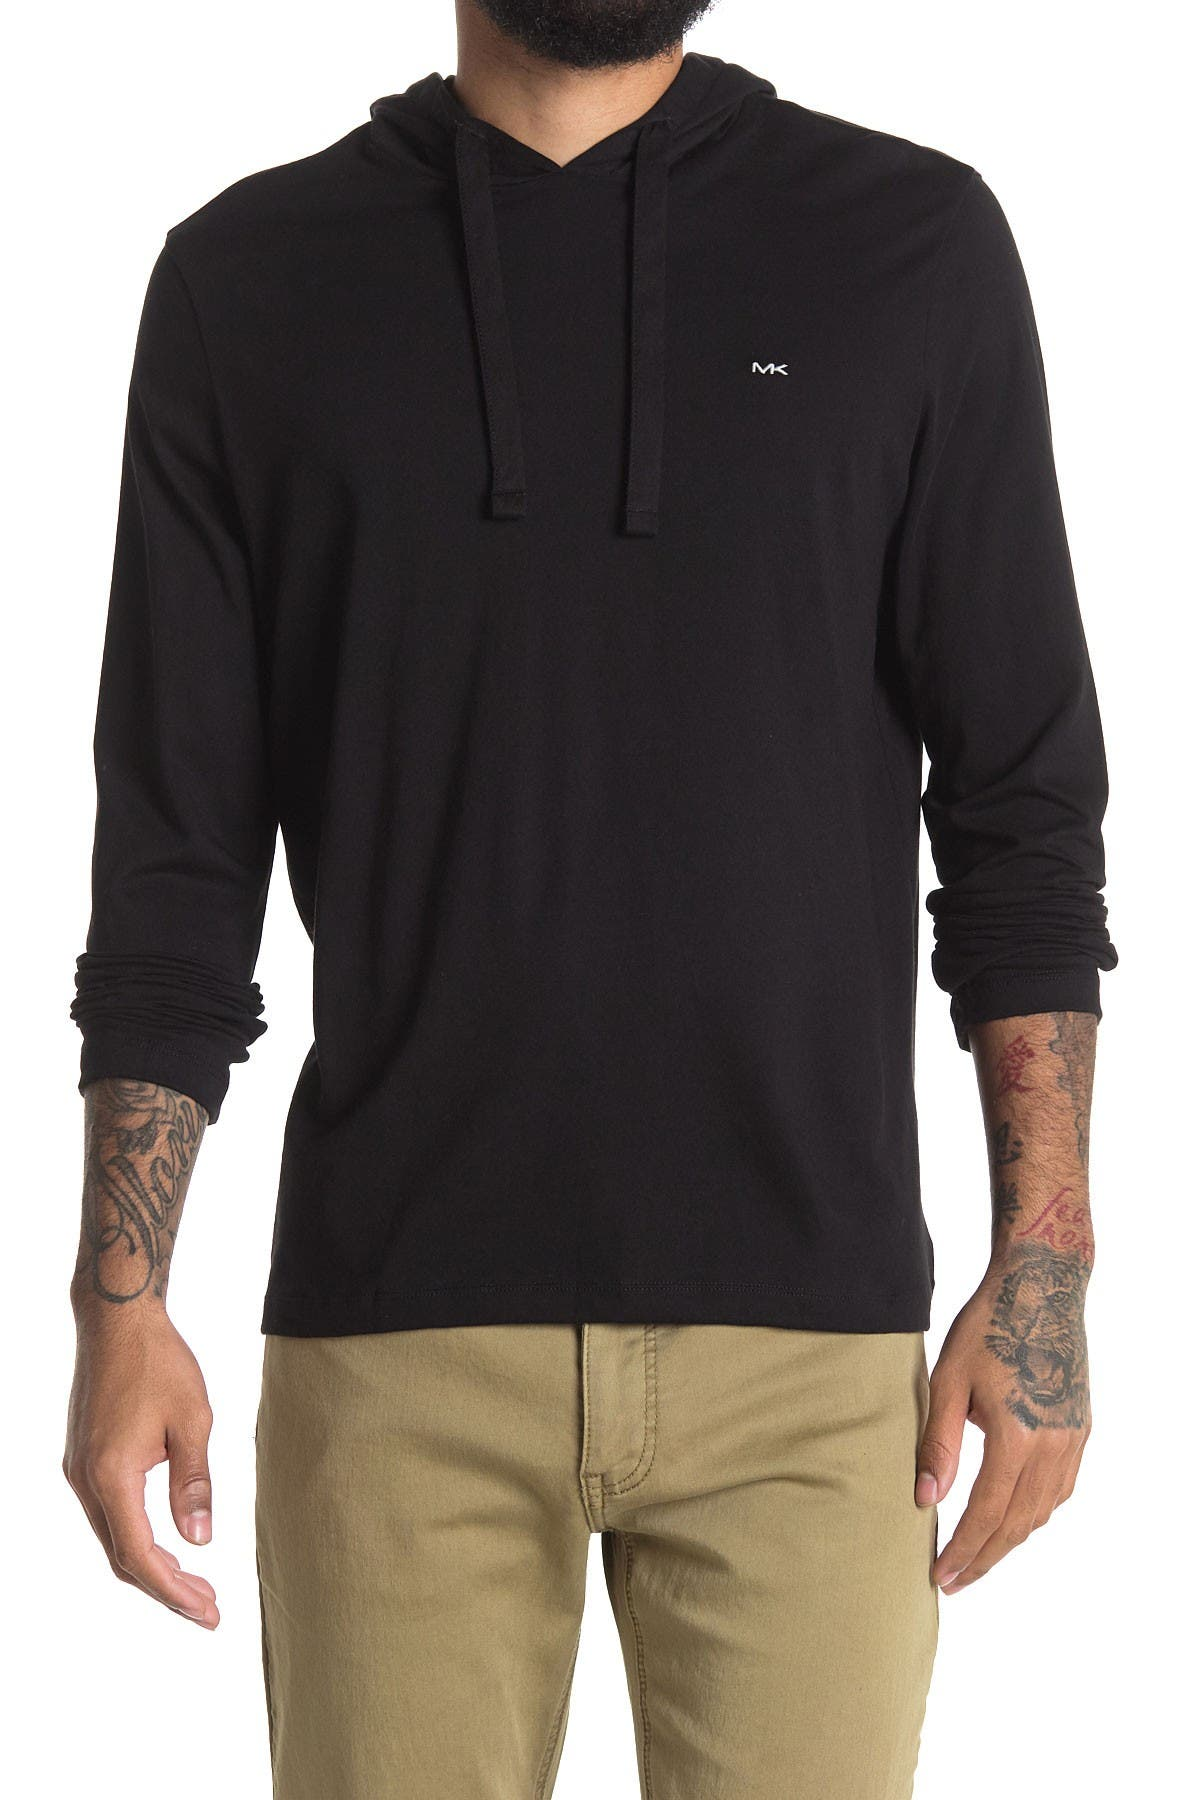 Image of Michael Kors Solid Long Sleeve Hooded T-Shirt